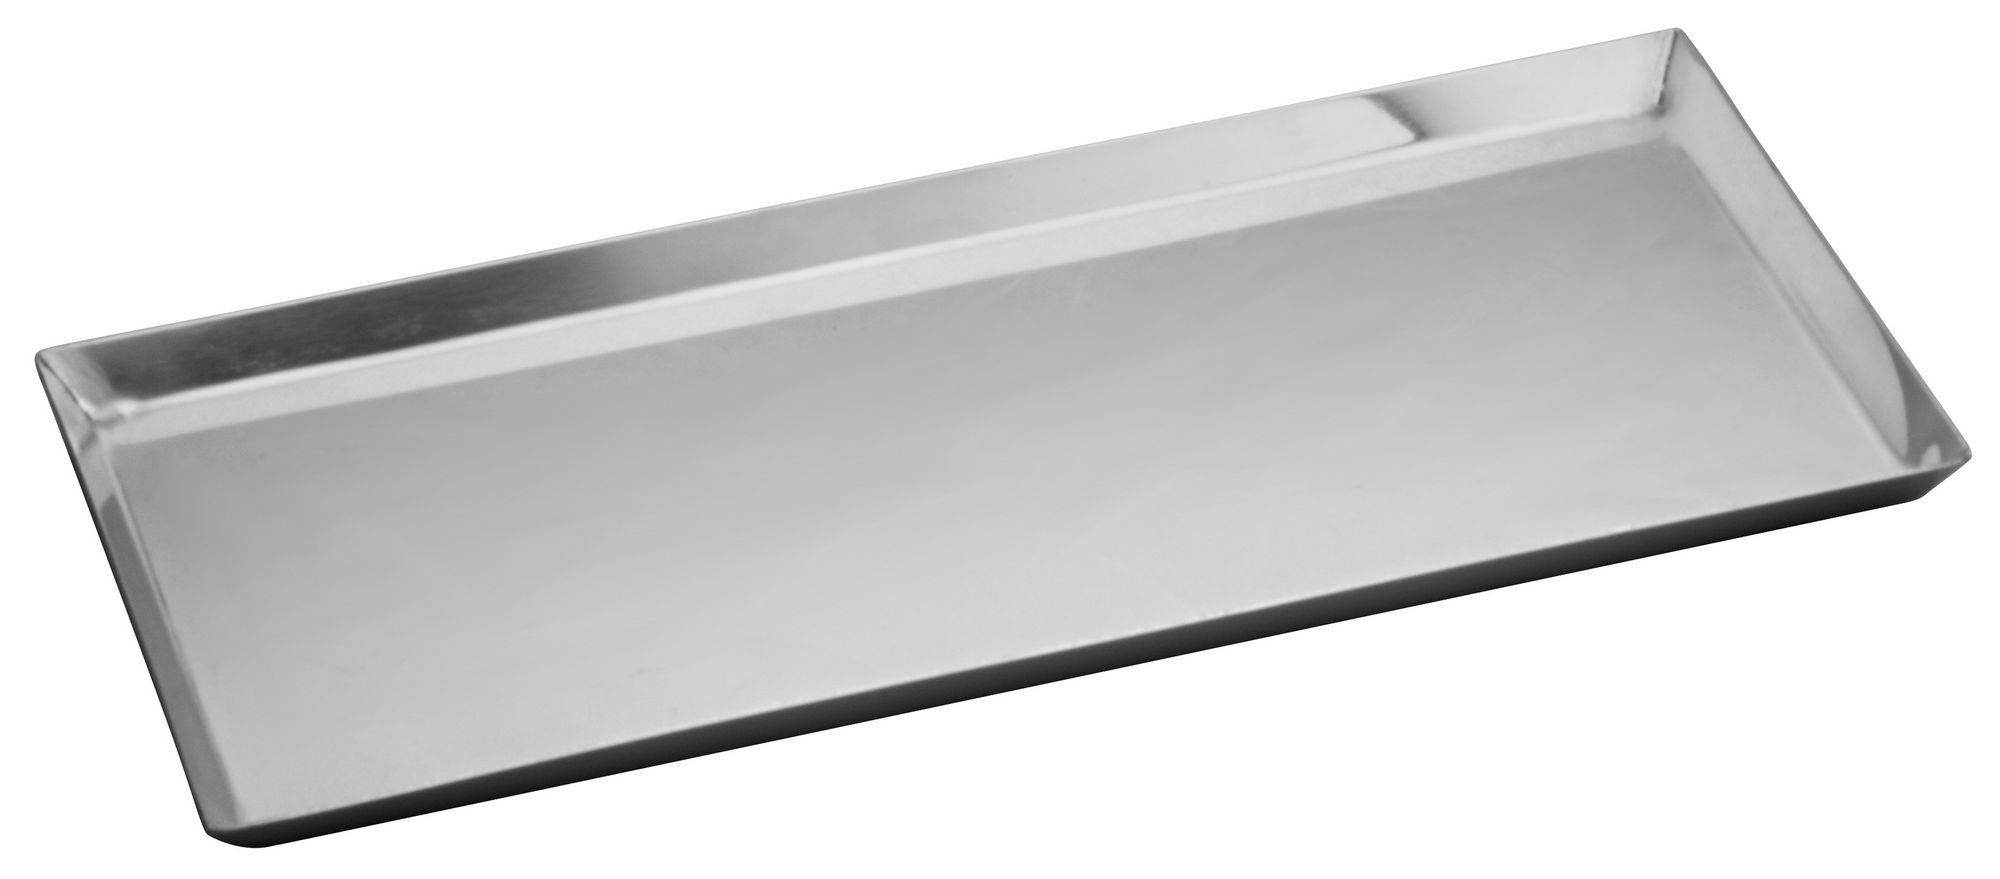 "Winco DDSI-102S Stainless Steel Long Serving Tray 14-1/8"" x 7-1/2"""